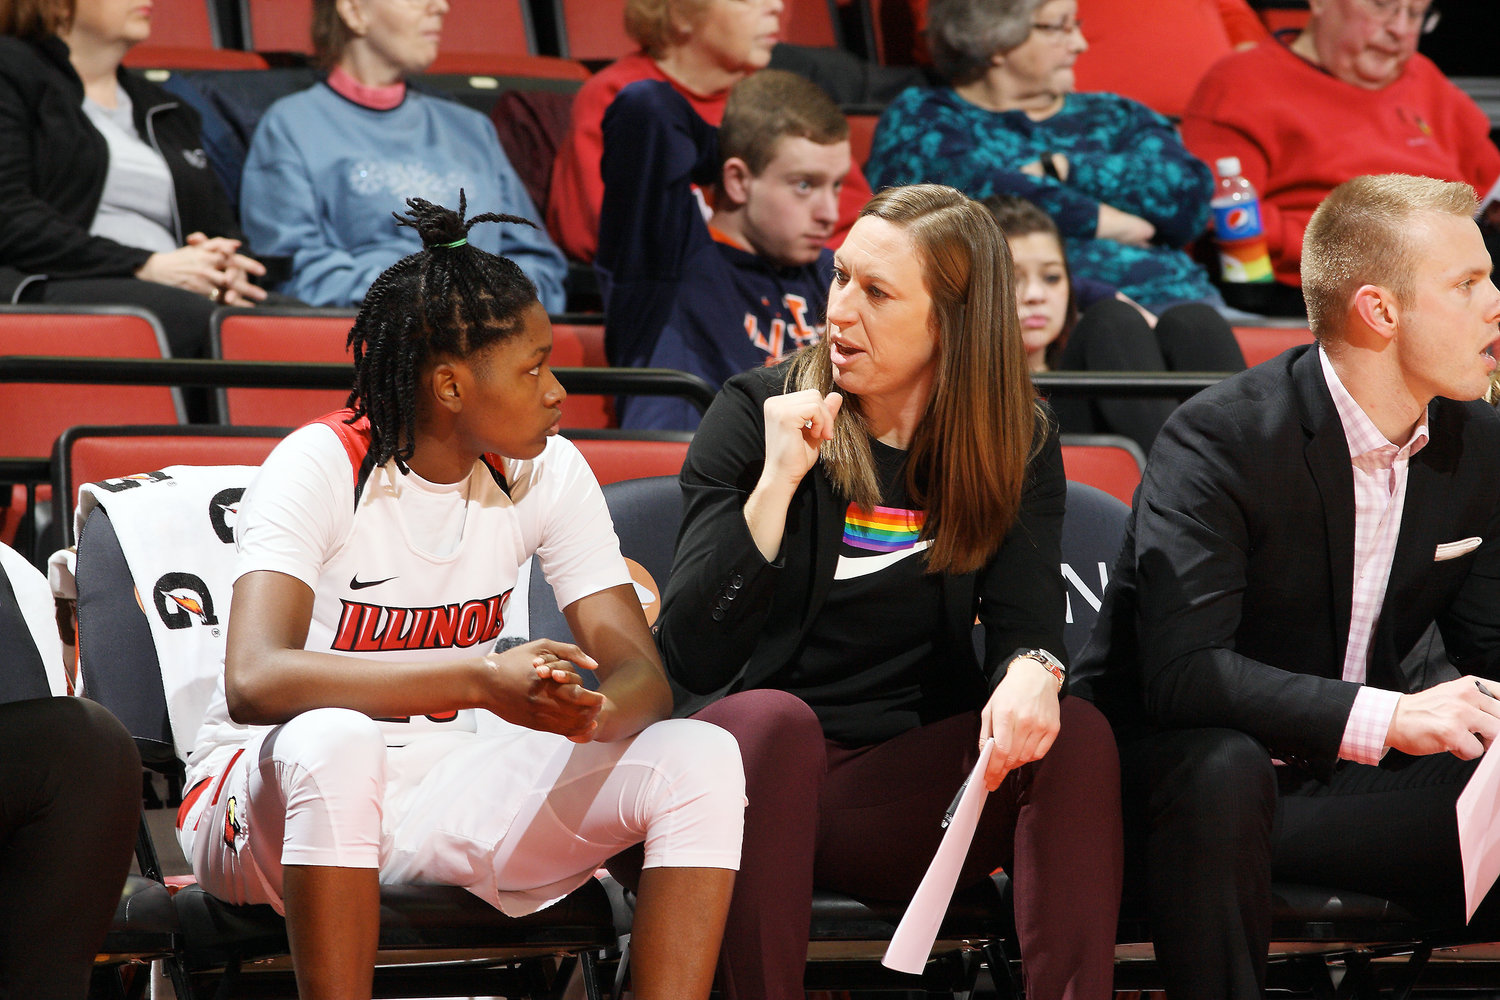 Jessica Keller (at right) is shown coaching one of Illinois State University's (ISU) players during a game last winter in Normal, Ill. She was recently promoted to associate head coach of the ISU women's basketball program.